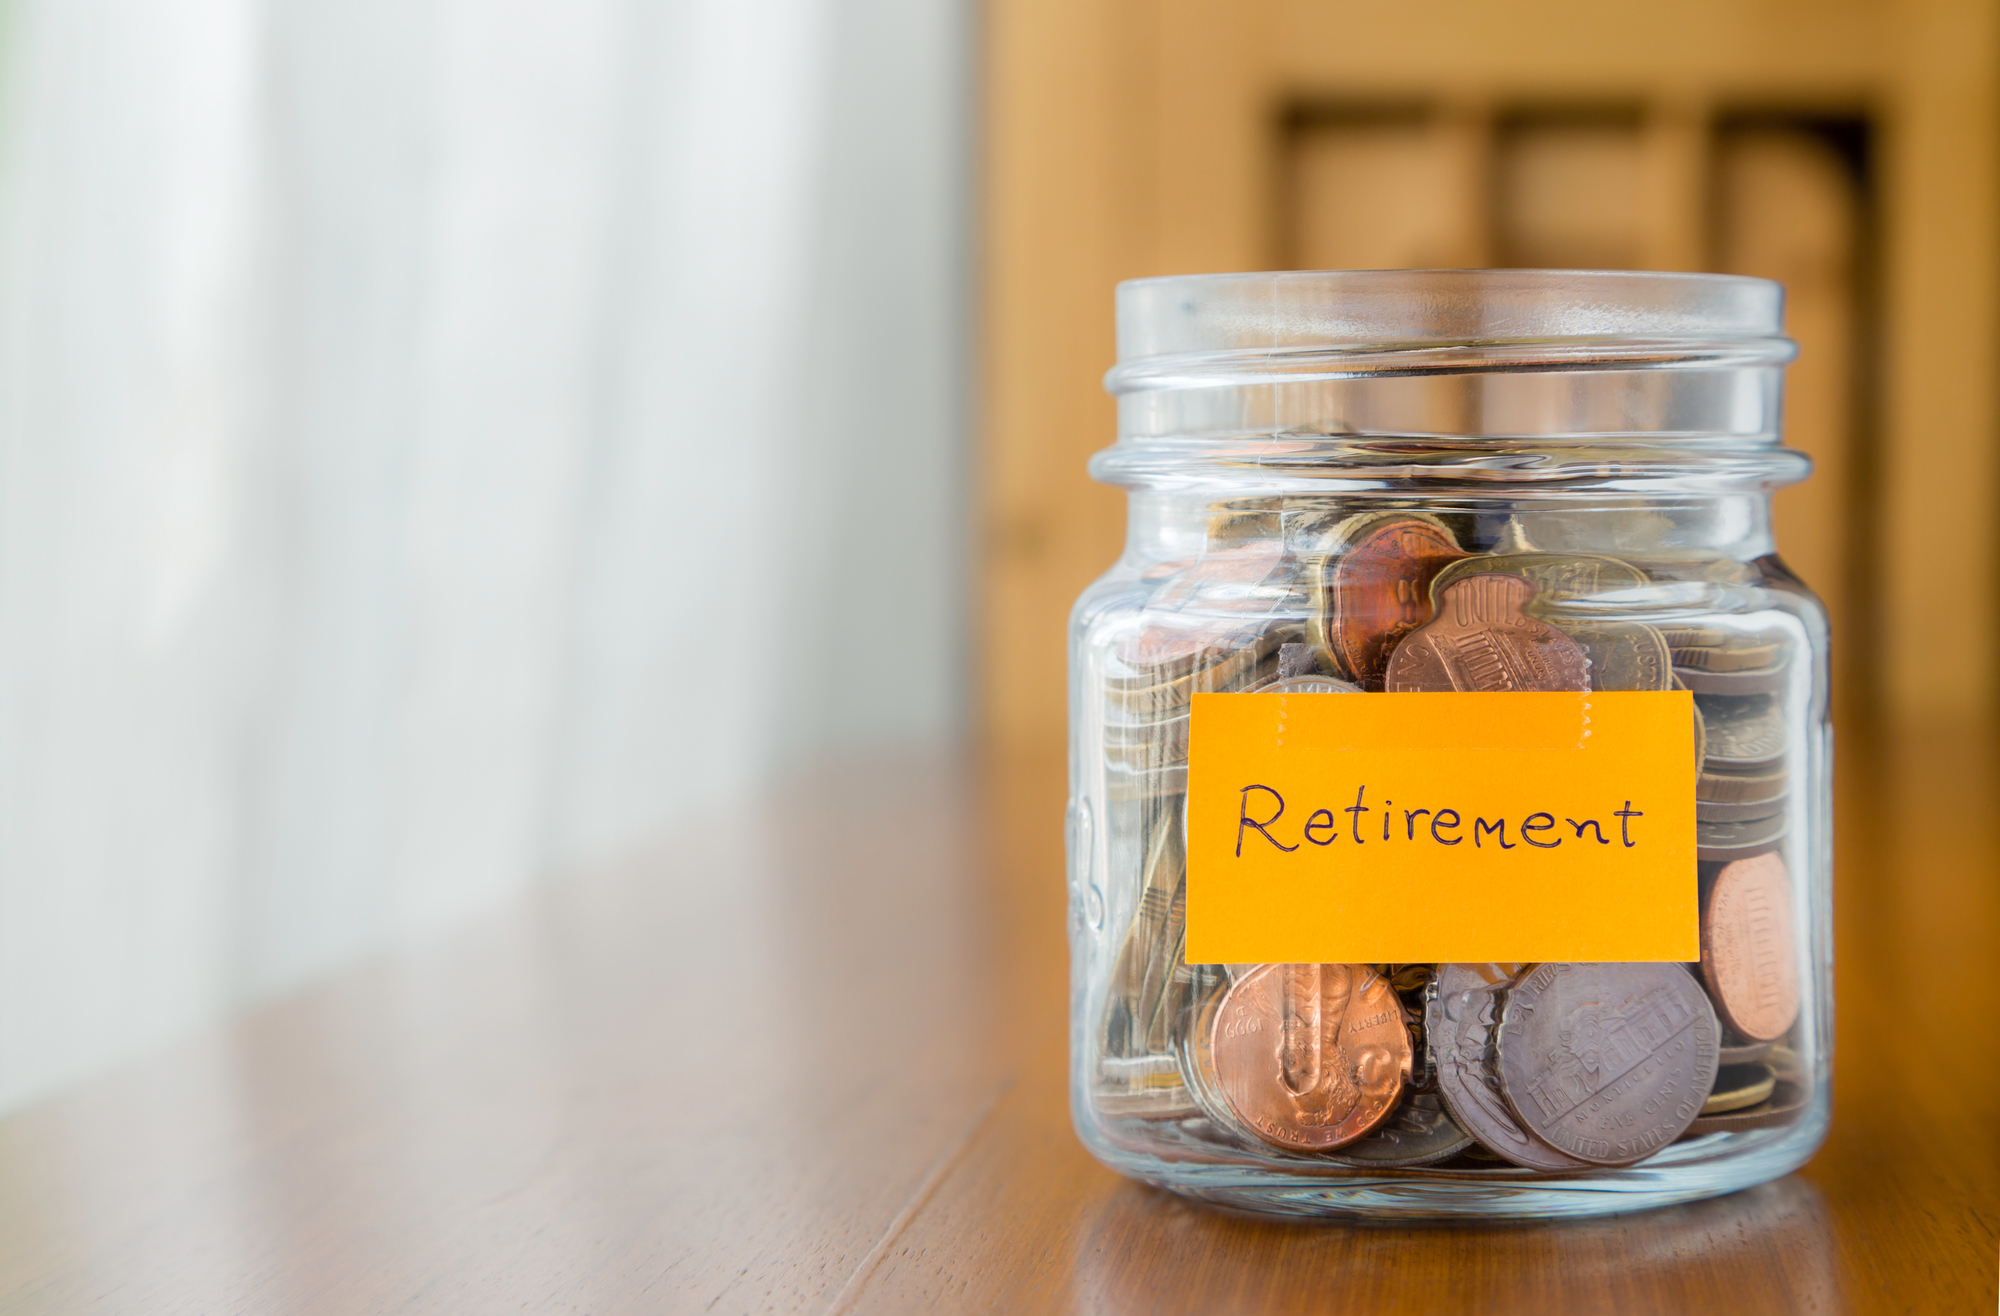 pension for a retirement plan in west palm beach